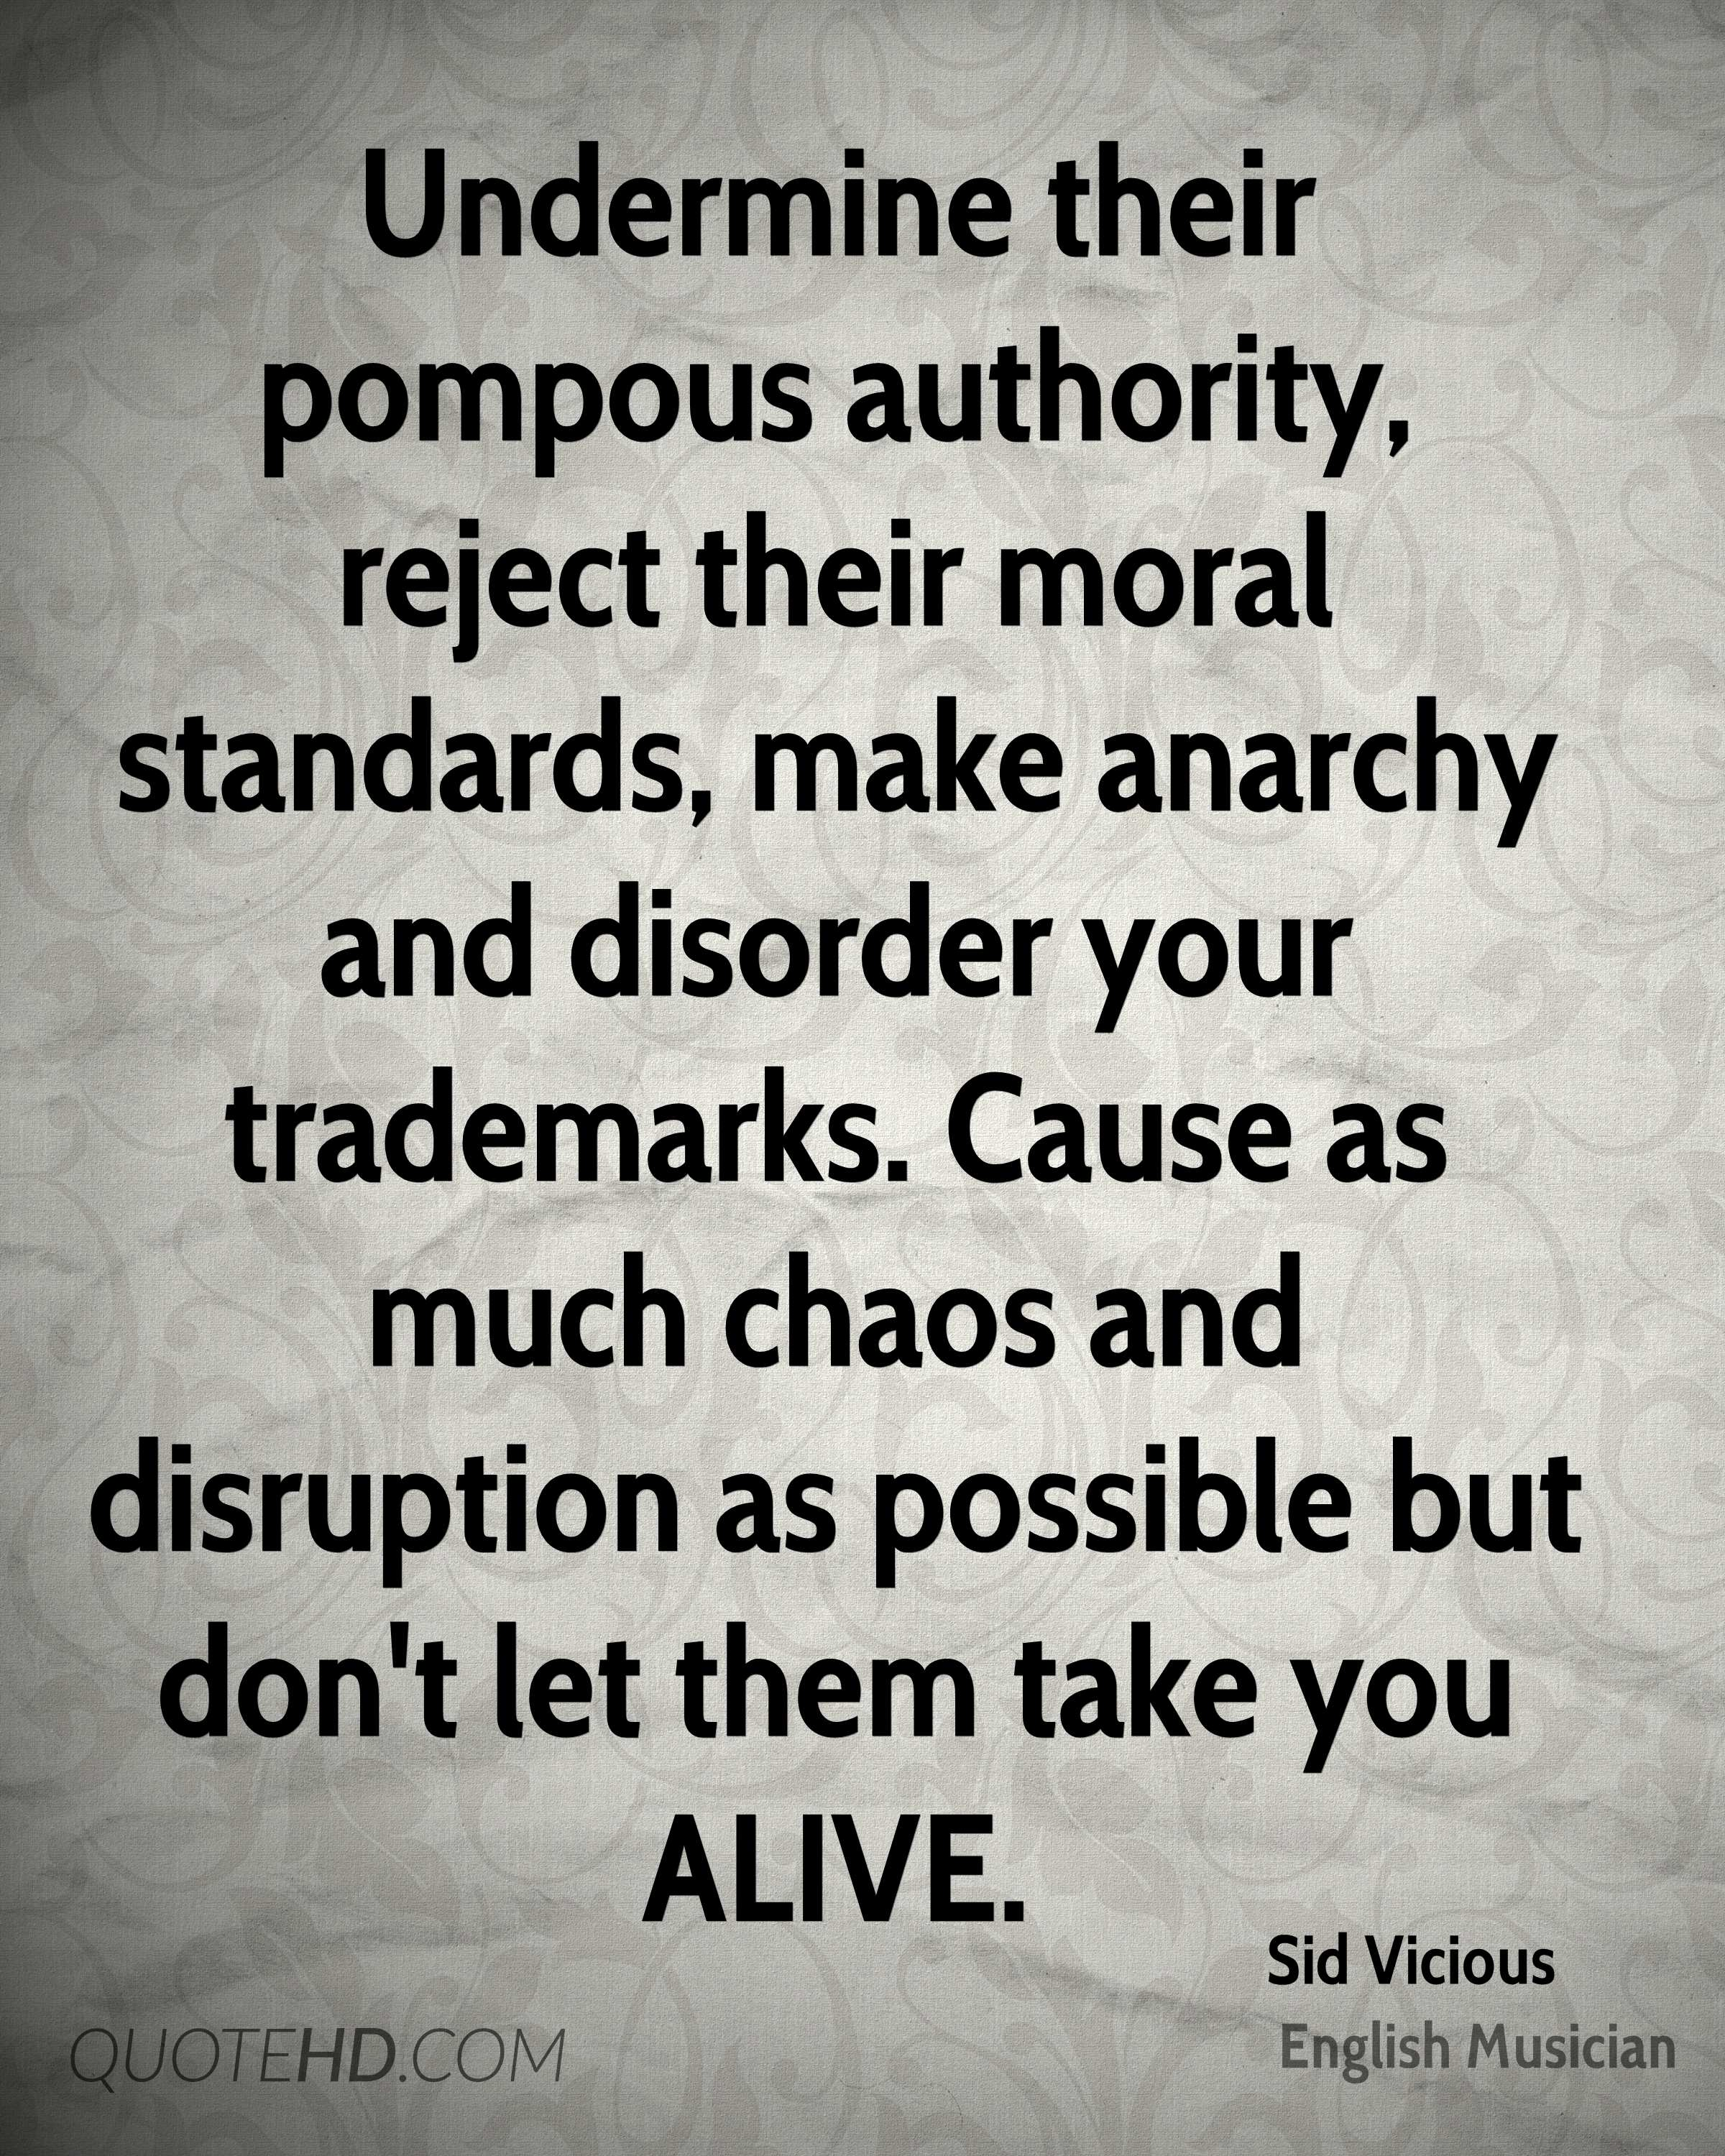 Undermine their pompous authority, reject their moral standards, make anarchy and disorder your trademarks. Cause as much chaos and disruption as possible but don't let them take you ALIVE.